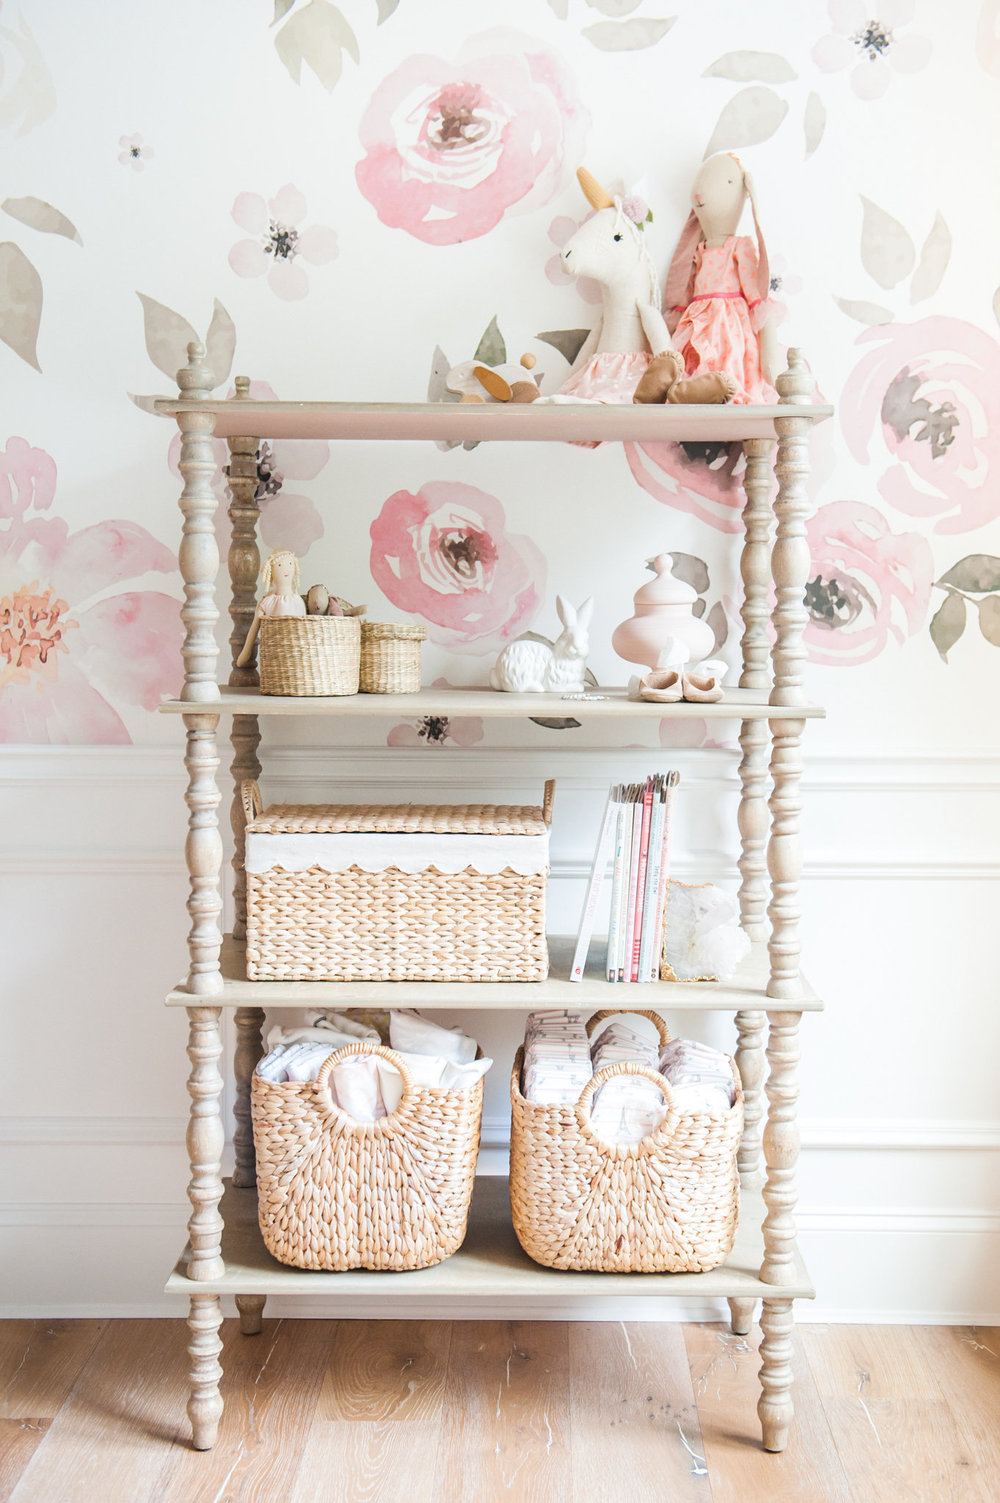 Floral wallpaper in baby girl nursery